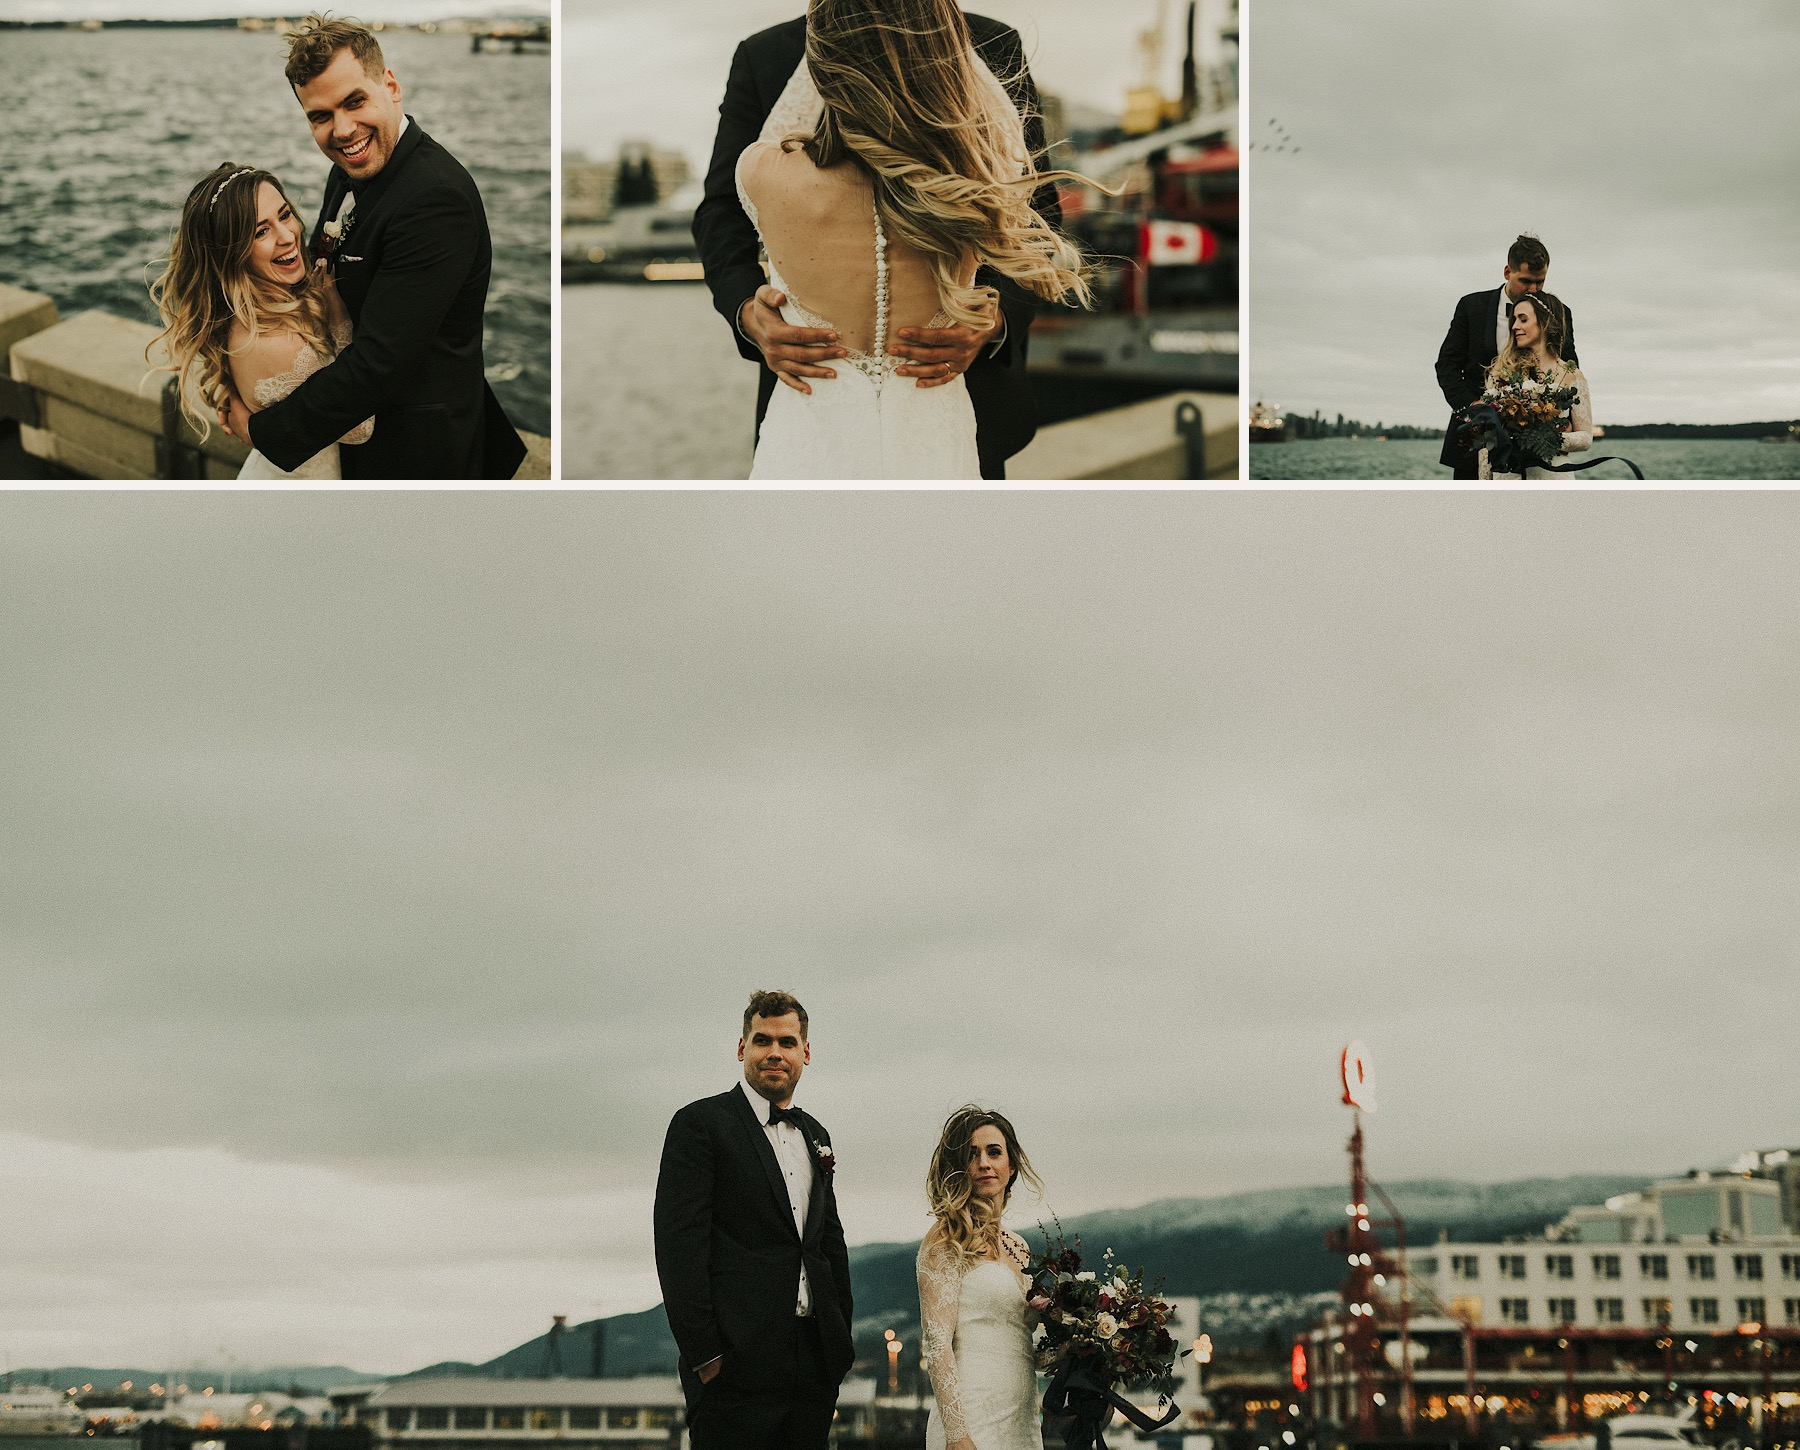 Aston + Charlie - The Magical Cover Shot Vancouver Wedding